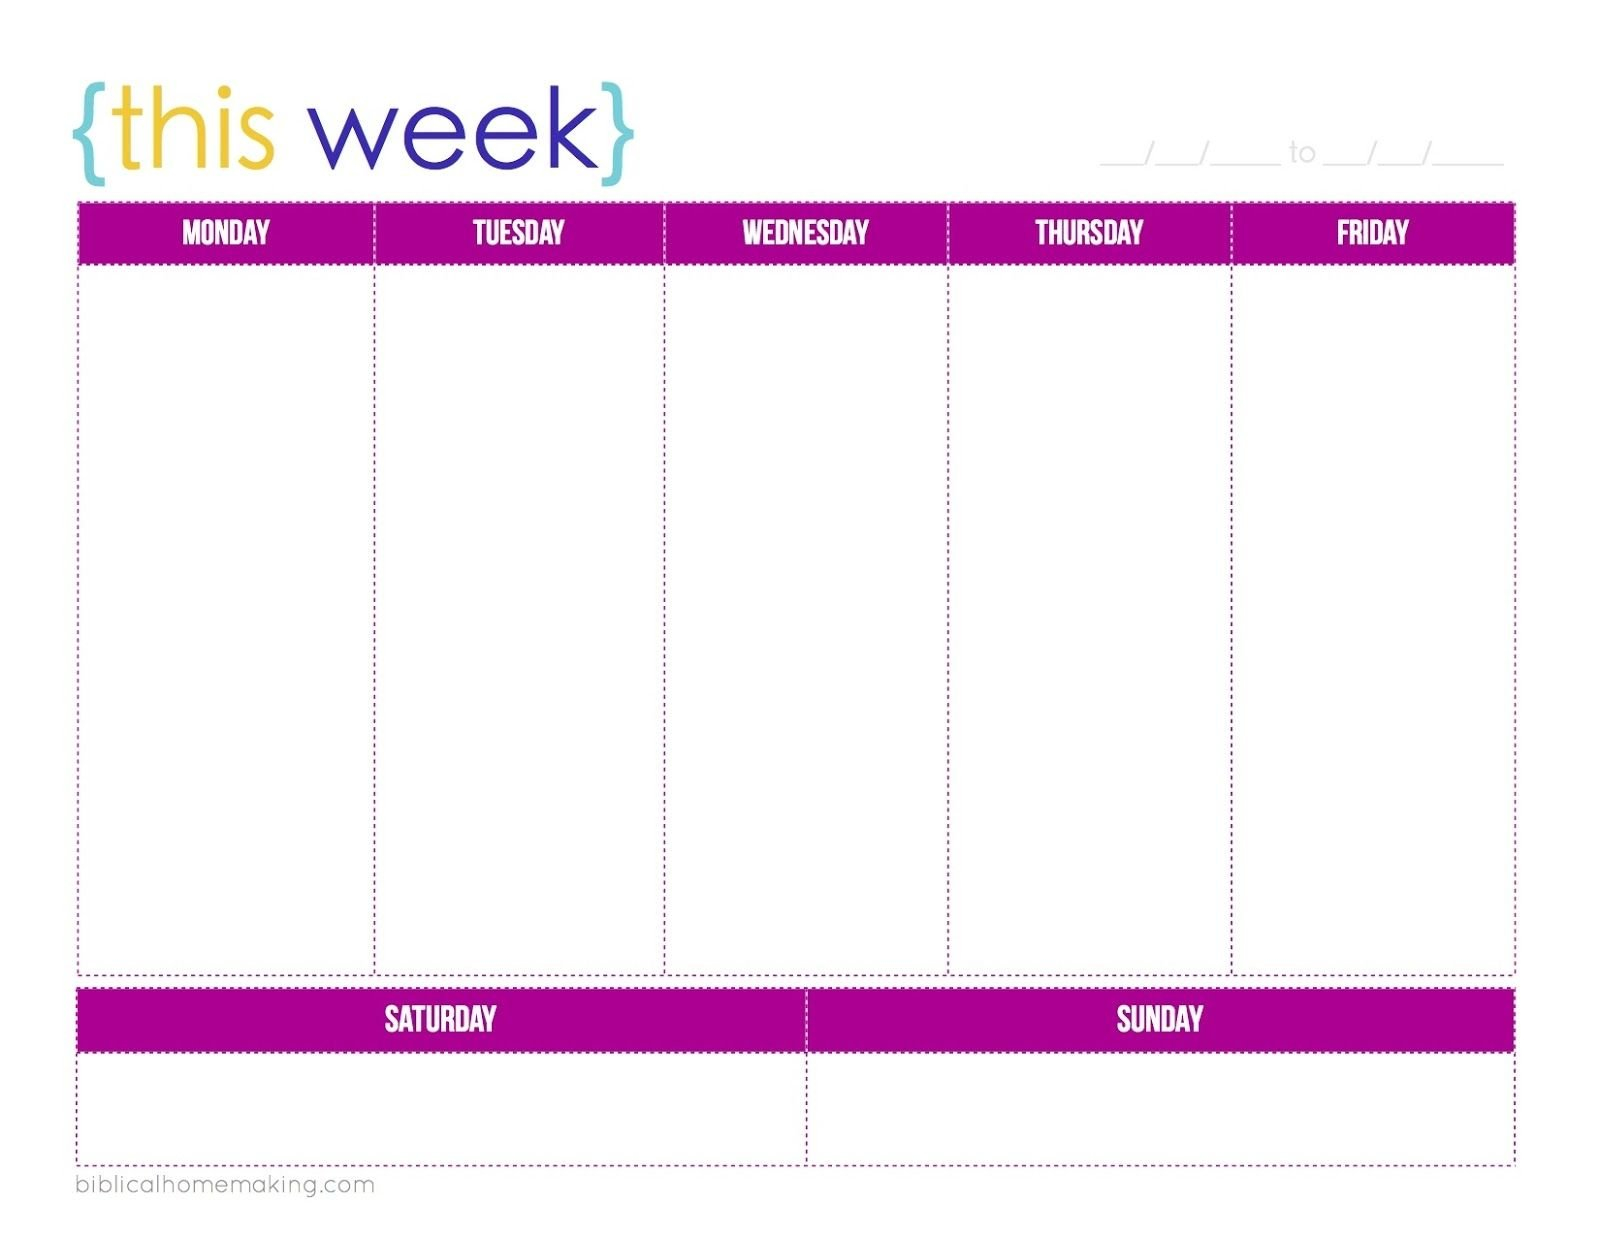 This Week A Free Weekly Planner Printable Biblical One Week Printable Calnedar